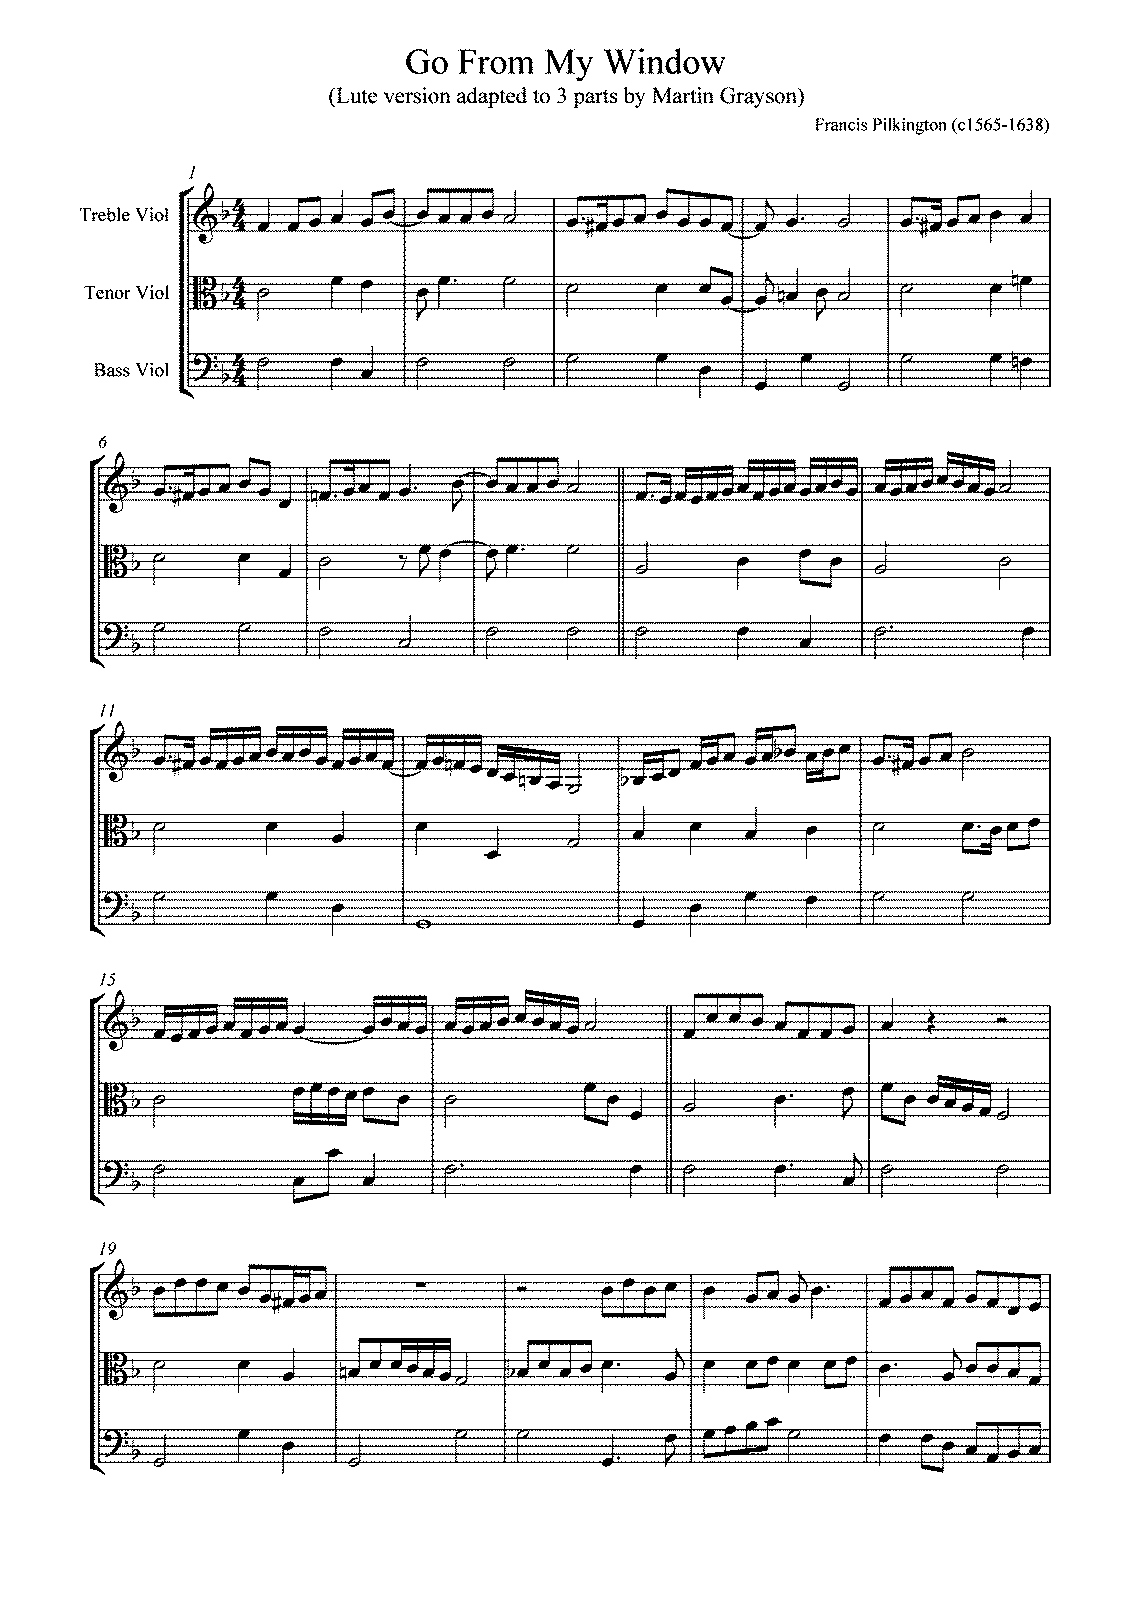 WIMA.756e-Pilkington-GofromMyWindow-3Part-Viols-Score.pdf